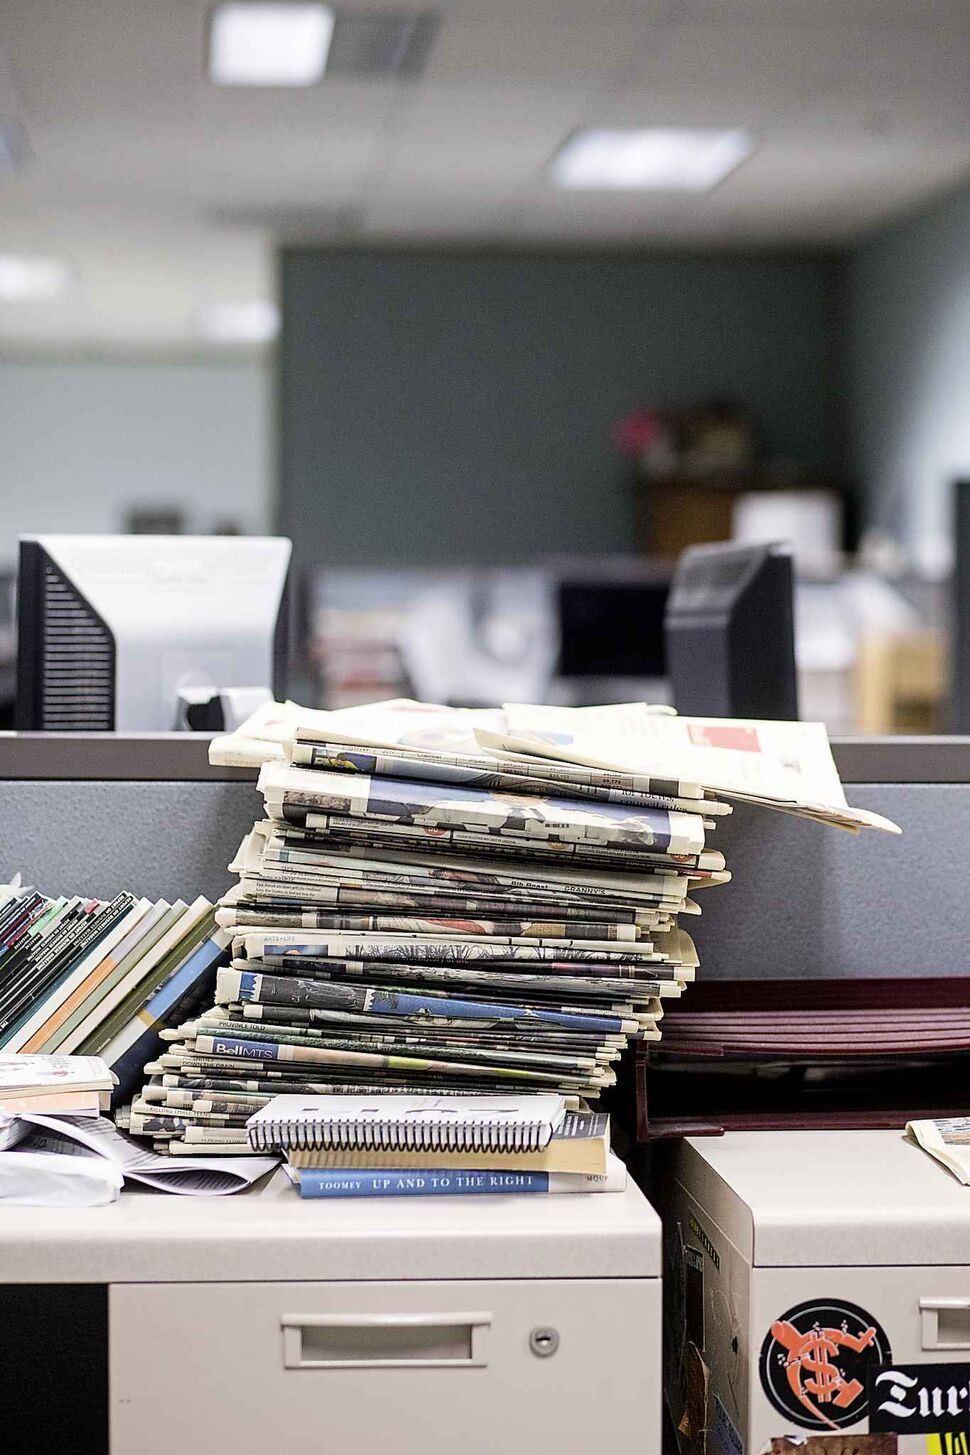 If there's one thing you'll find in the newsroom, it's stacks of paper. MIKAELA MACKENZIE / WINNIPEG FREE PRESS